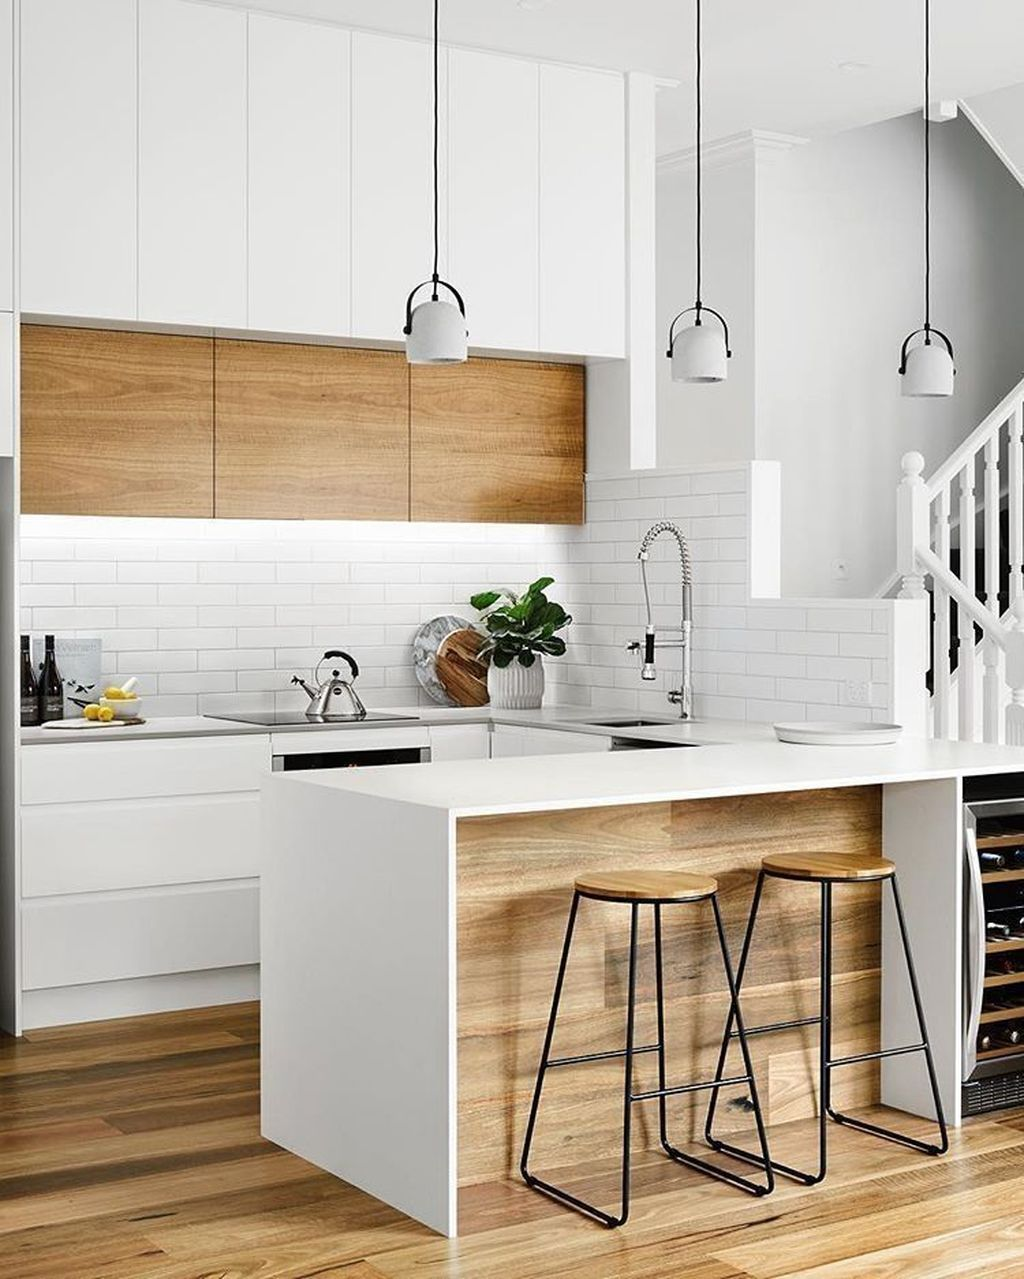 Interior Design For Very Small Kitchen: The Best Kitchen Decorating Ideas - HOOMCODE